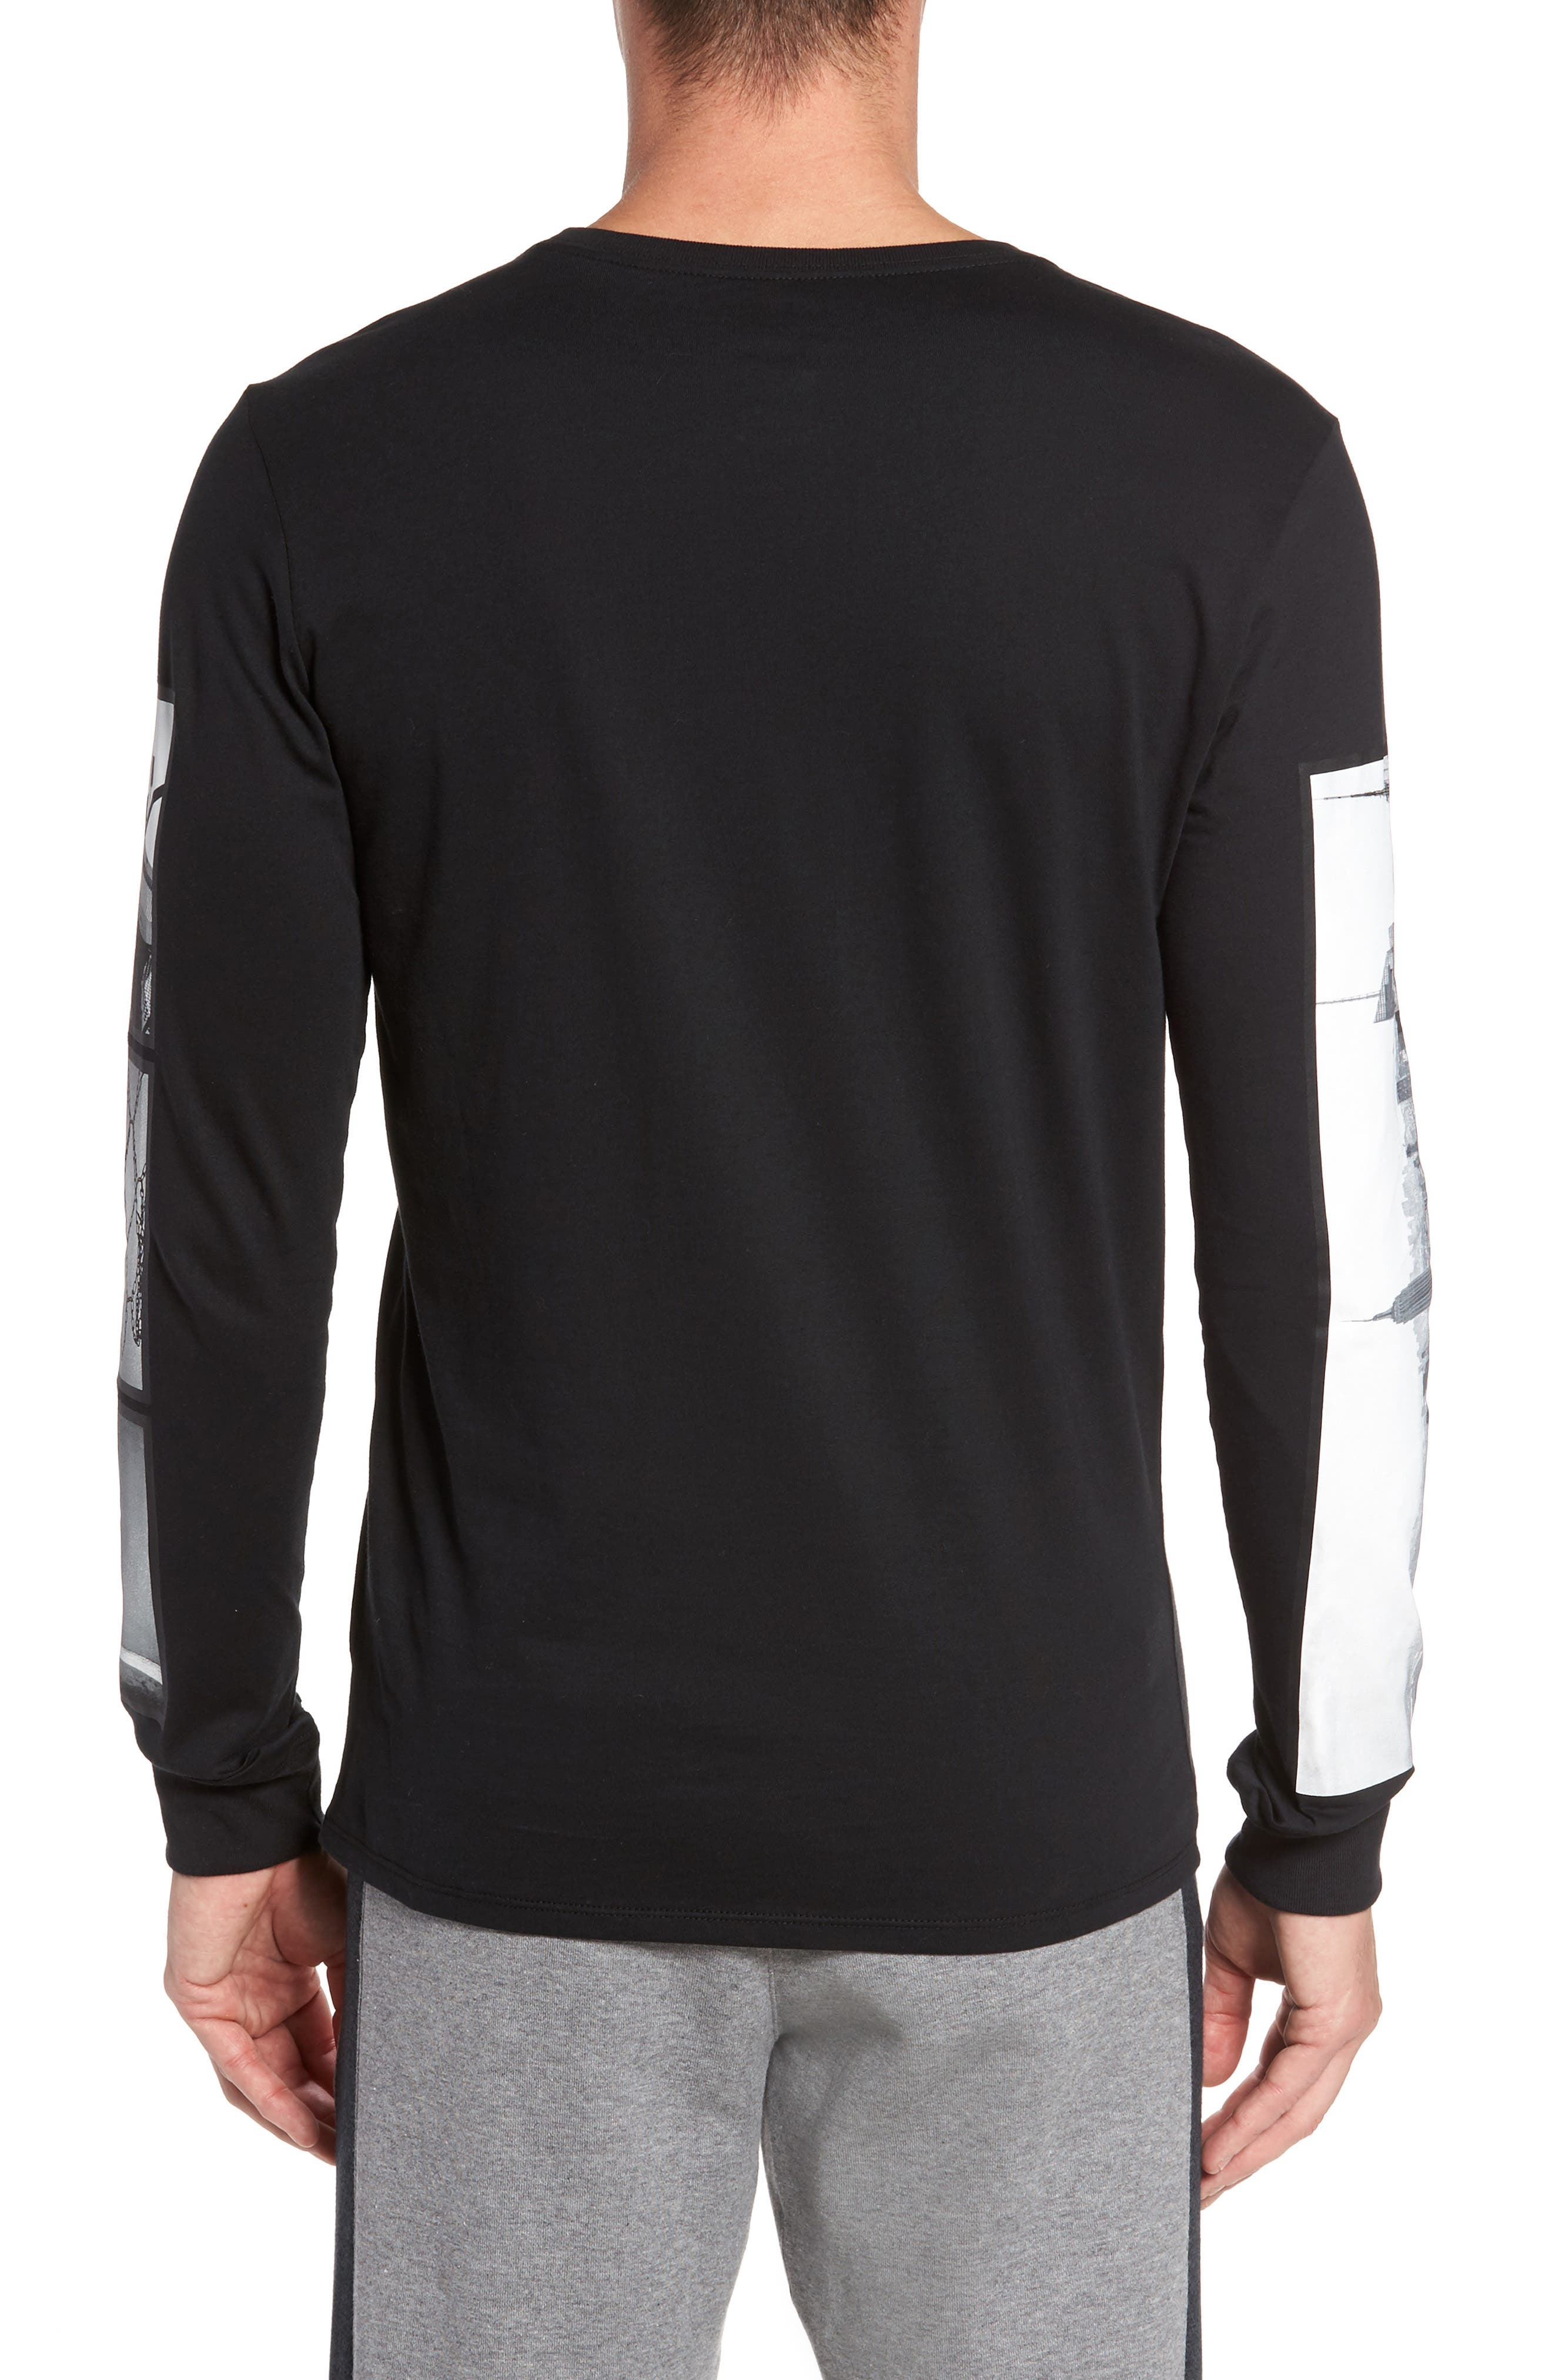 Air Force 1 Long Sleeve T-Shirt,                             Alternate thumbnail 2, color,                             010